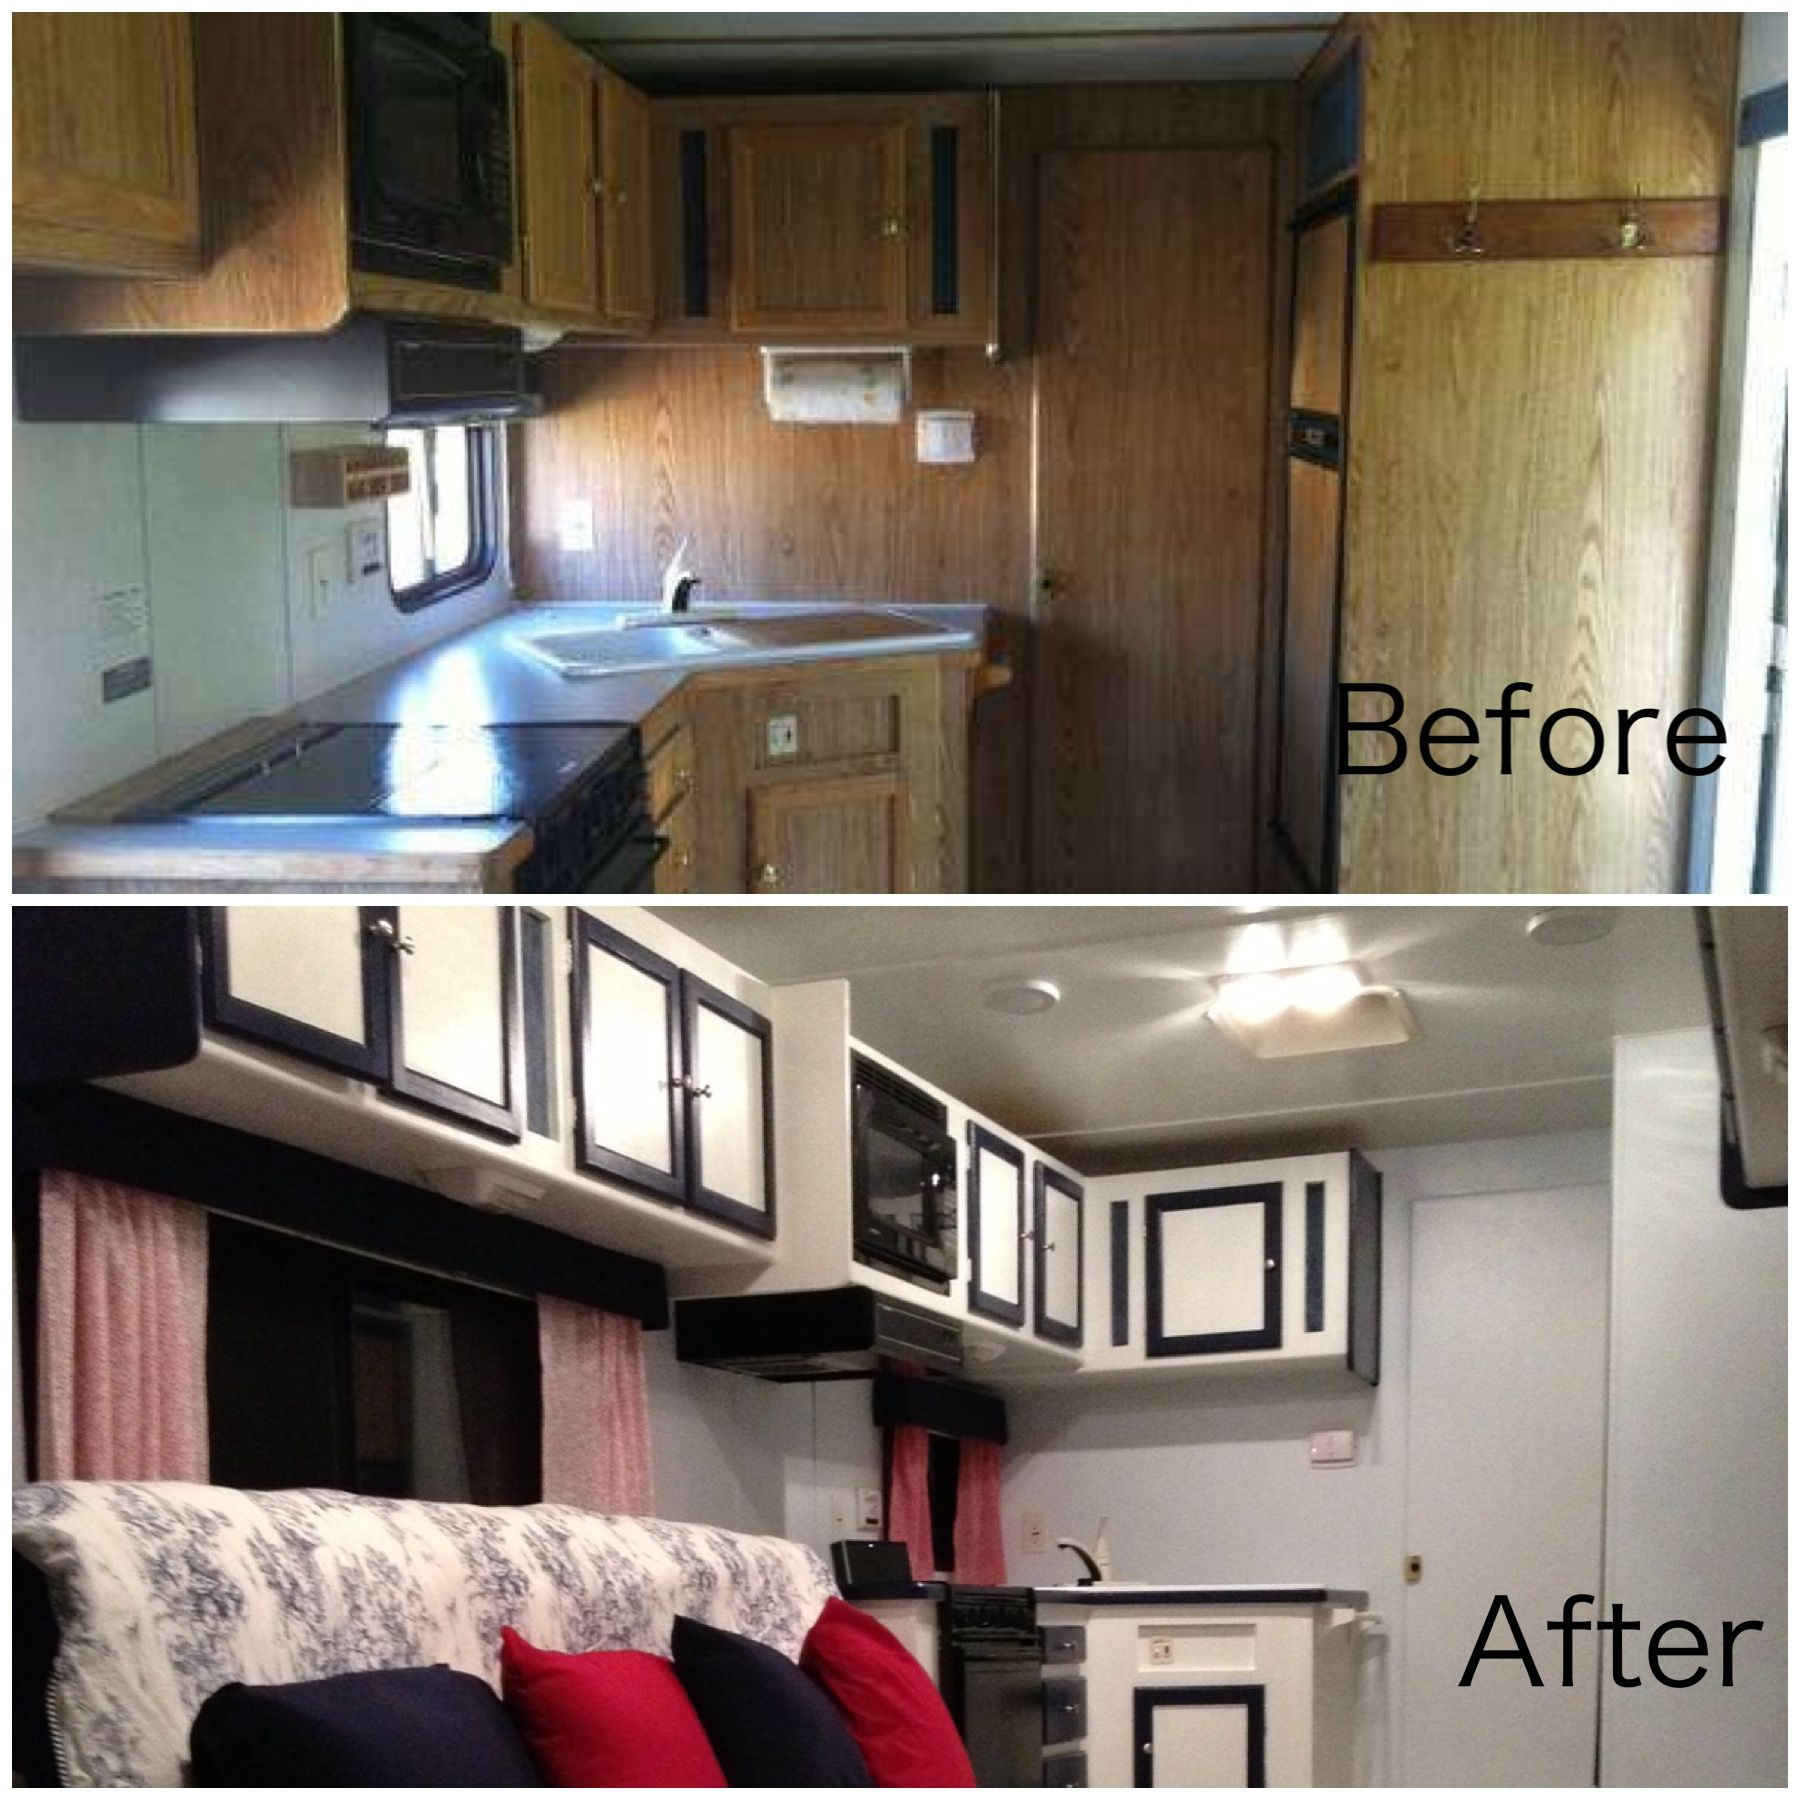 High Quality Travel Trailer Remodel  Removed All Trailer Furniture, Repaired Walls,  Painted Ceiling, Walls